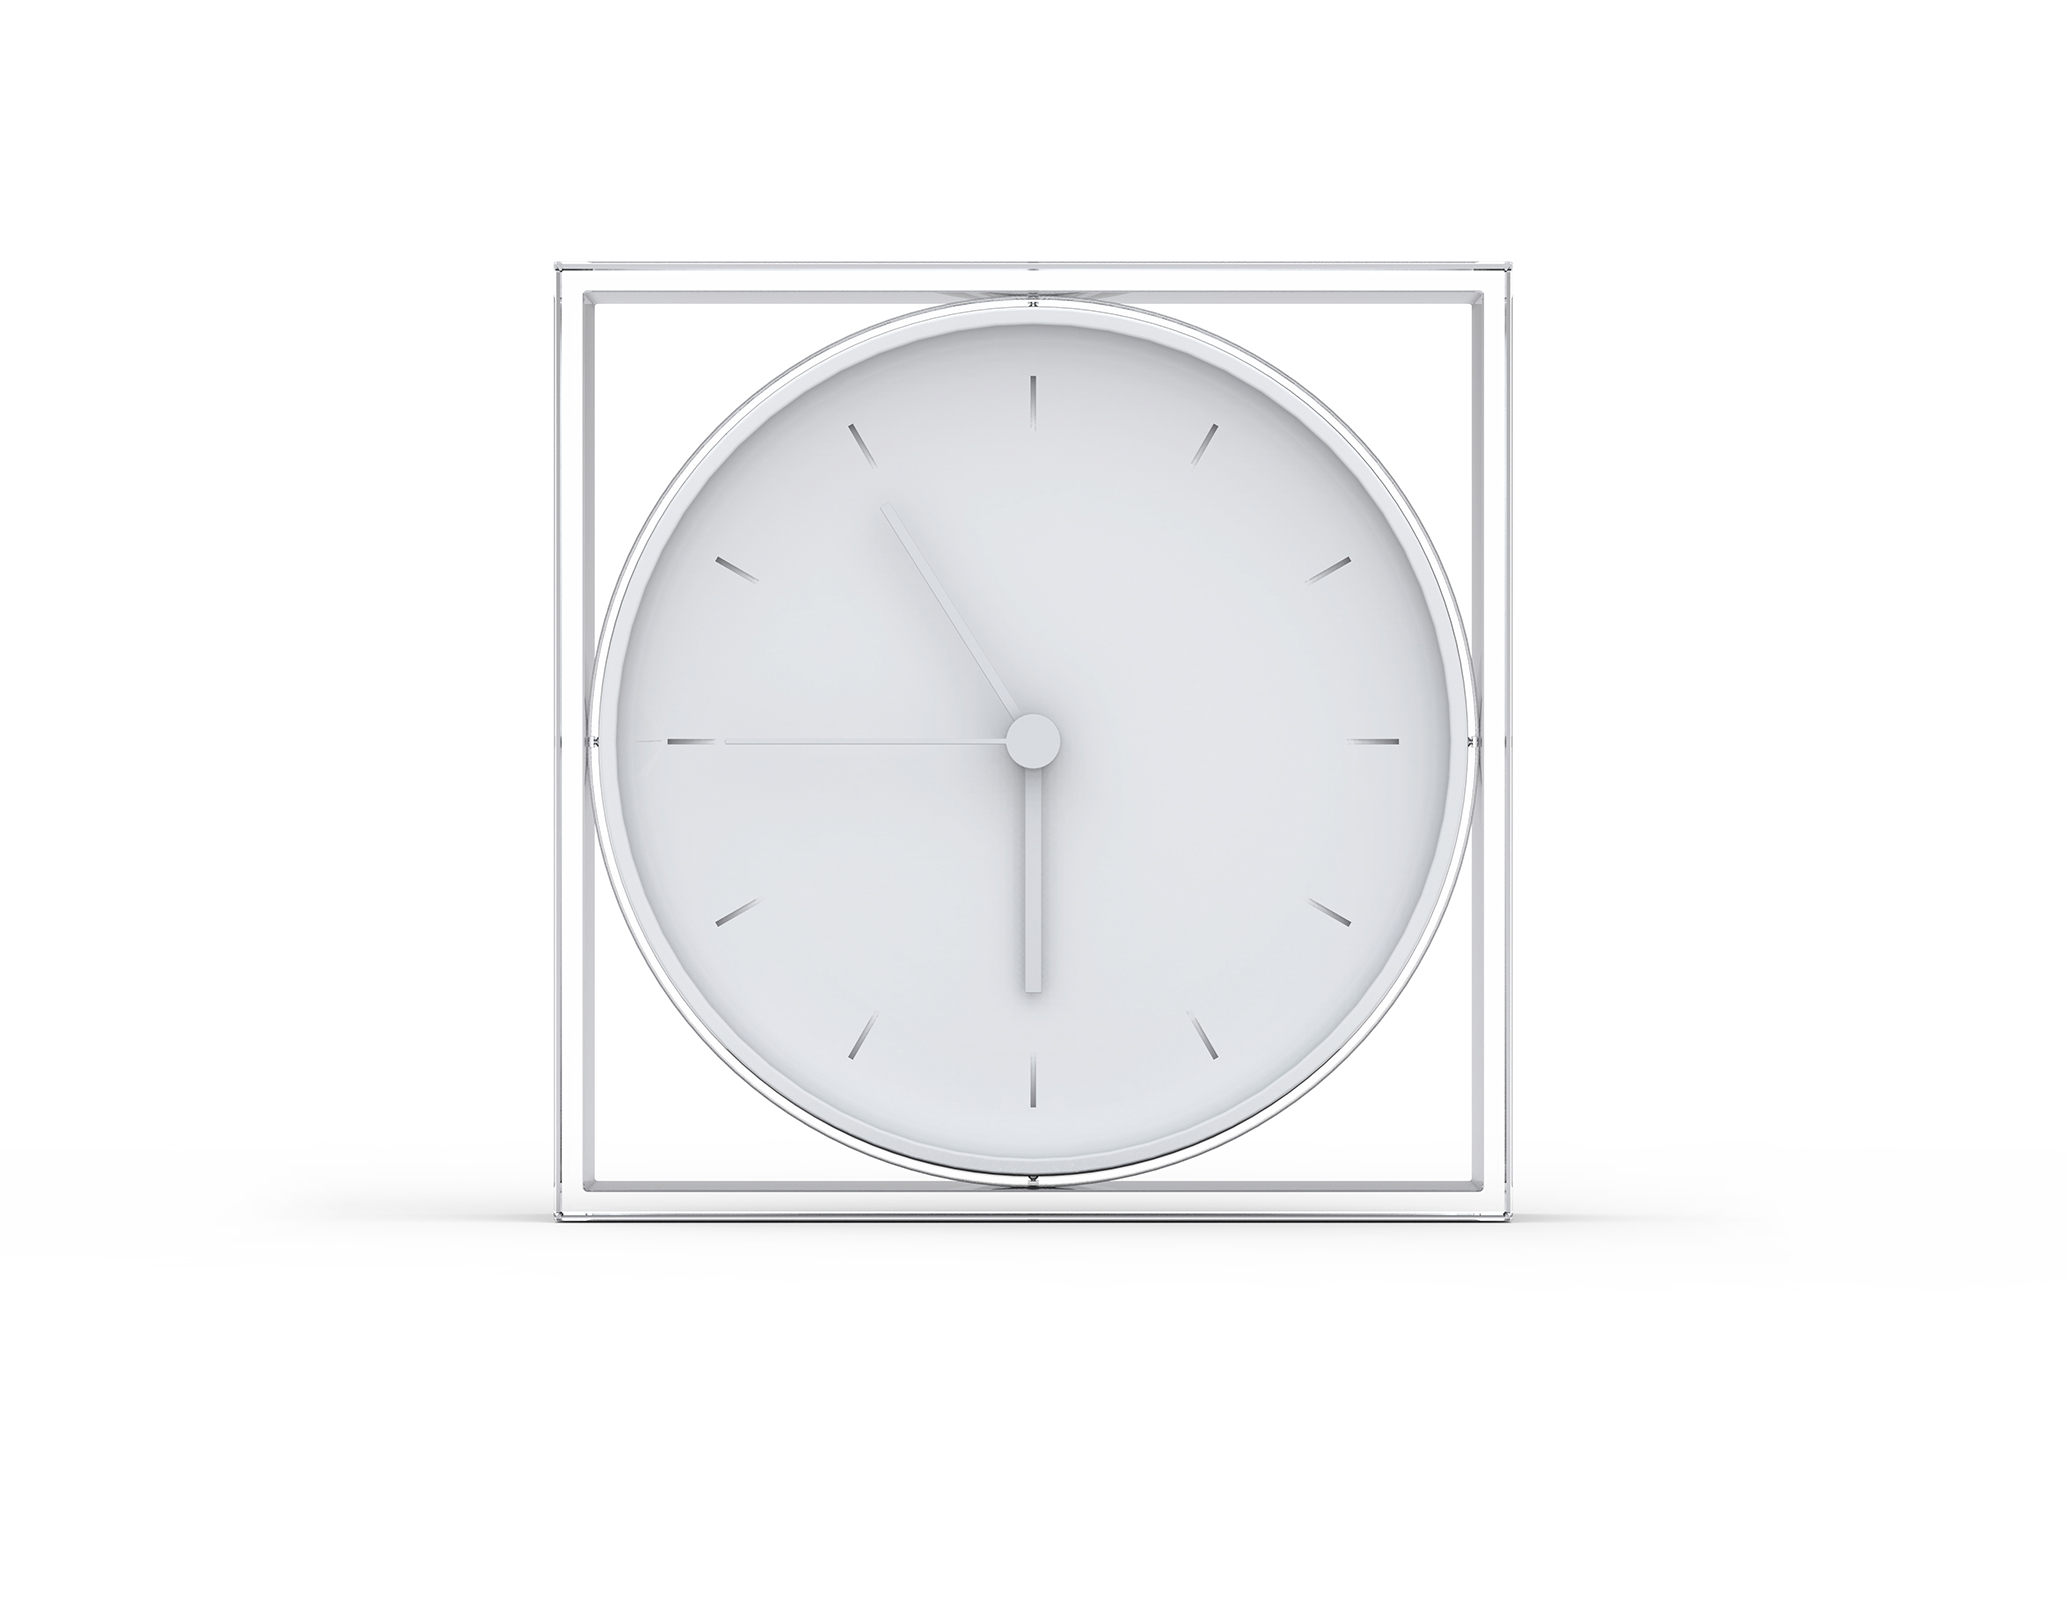 2015-12-10 LEXON VOID TIME packaging renders.2469b